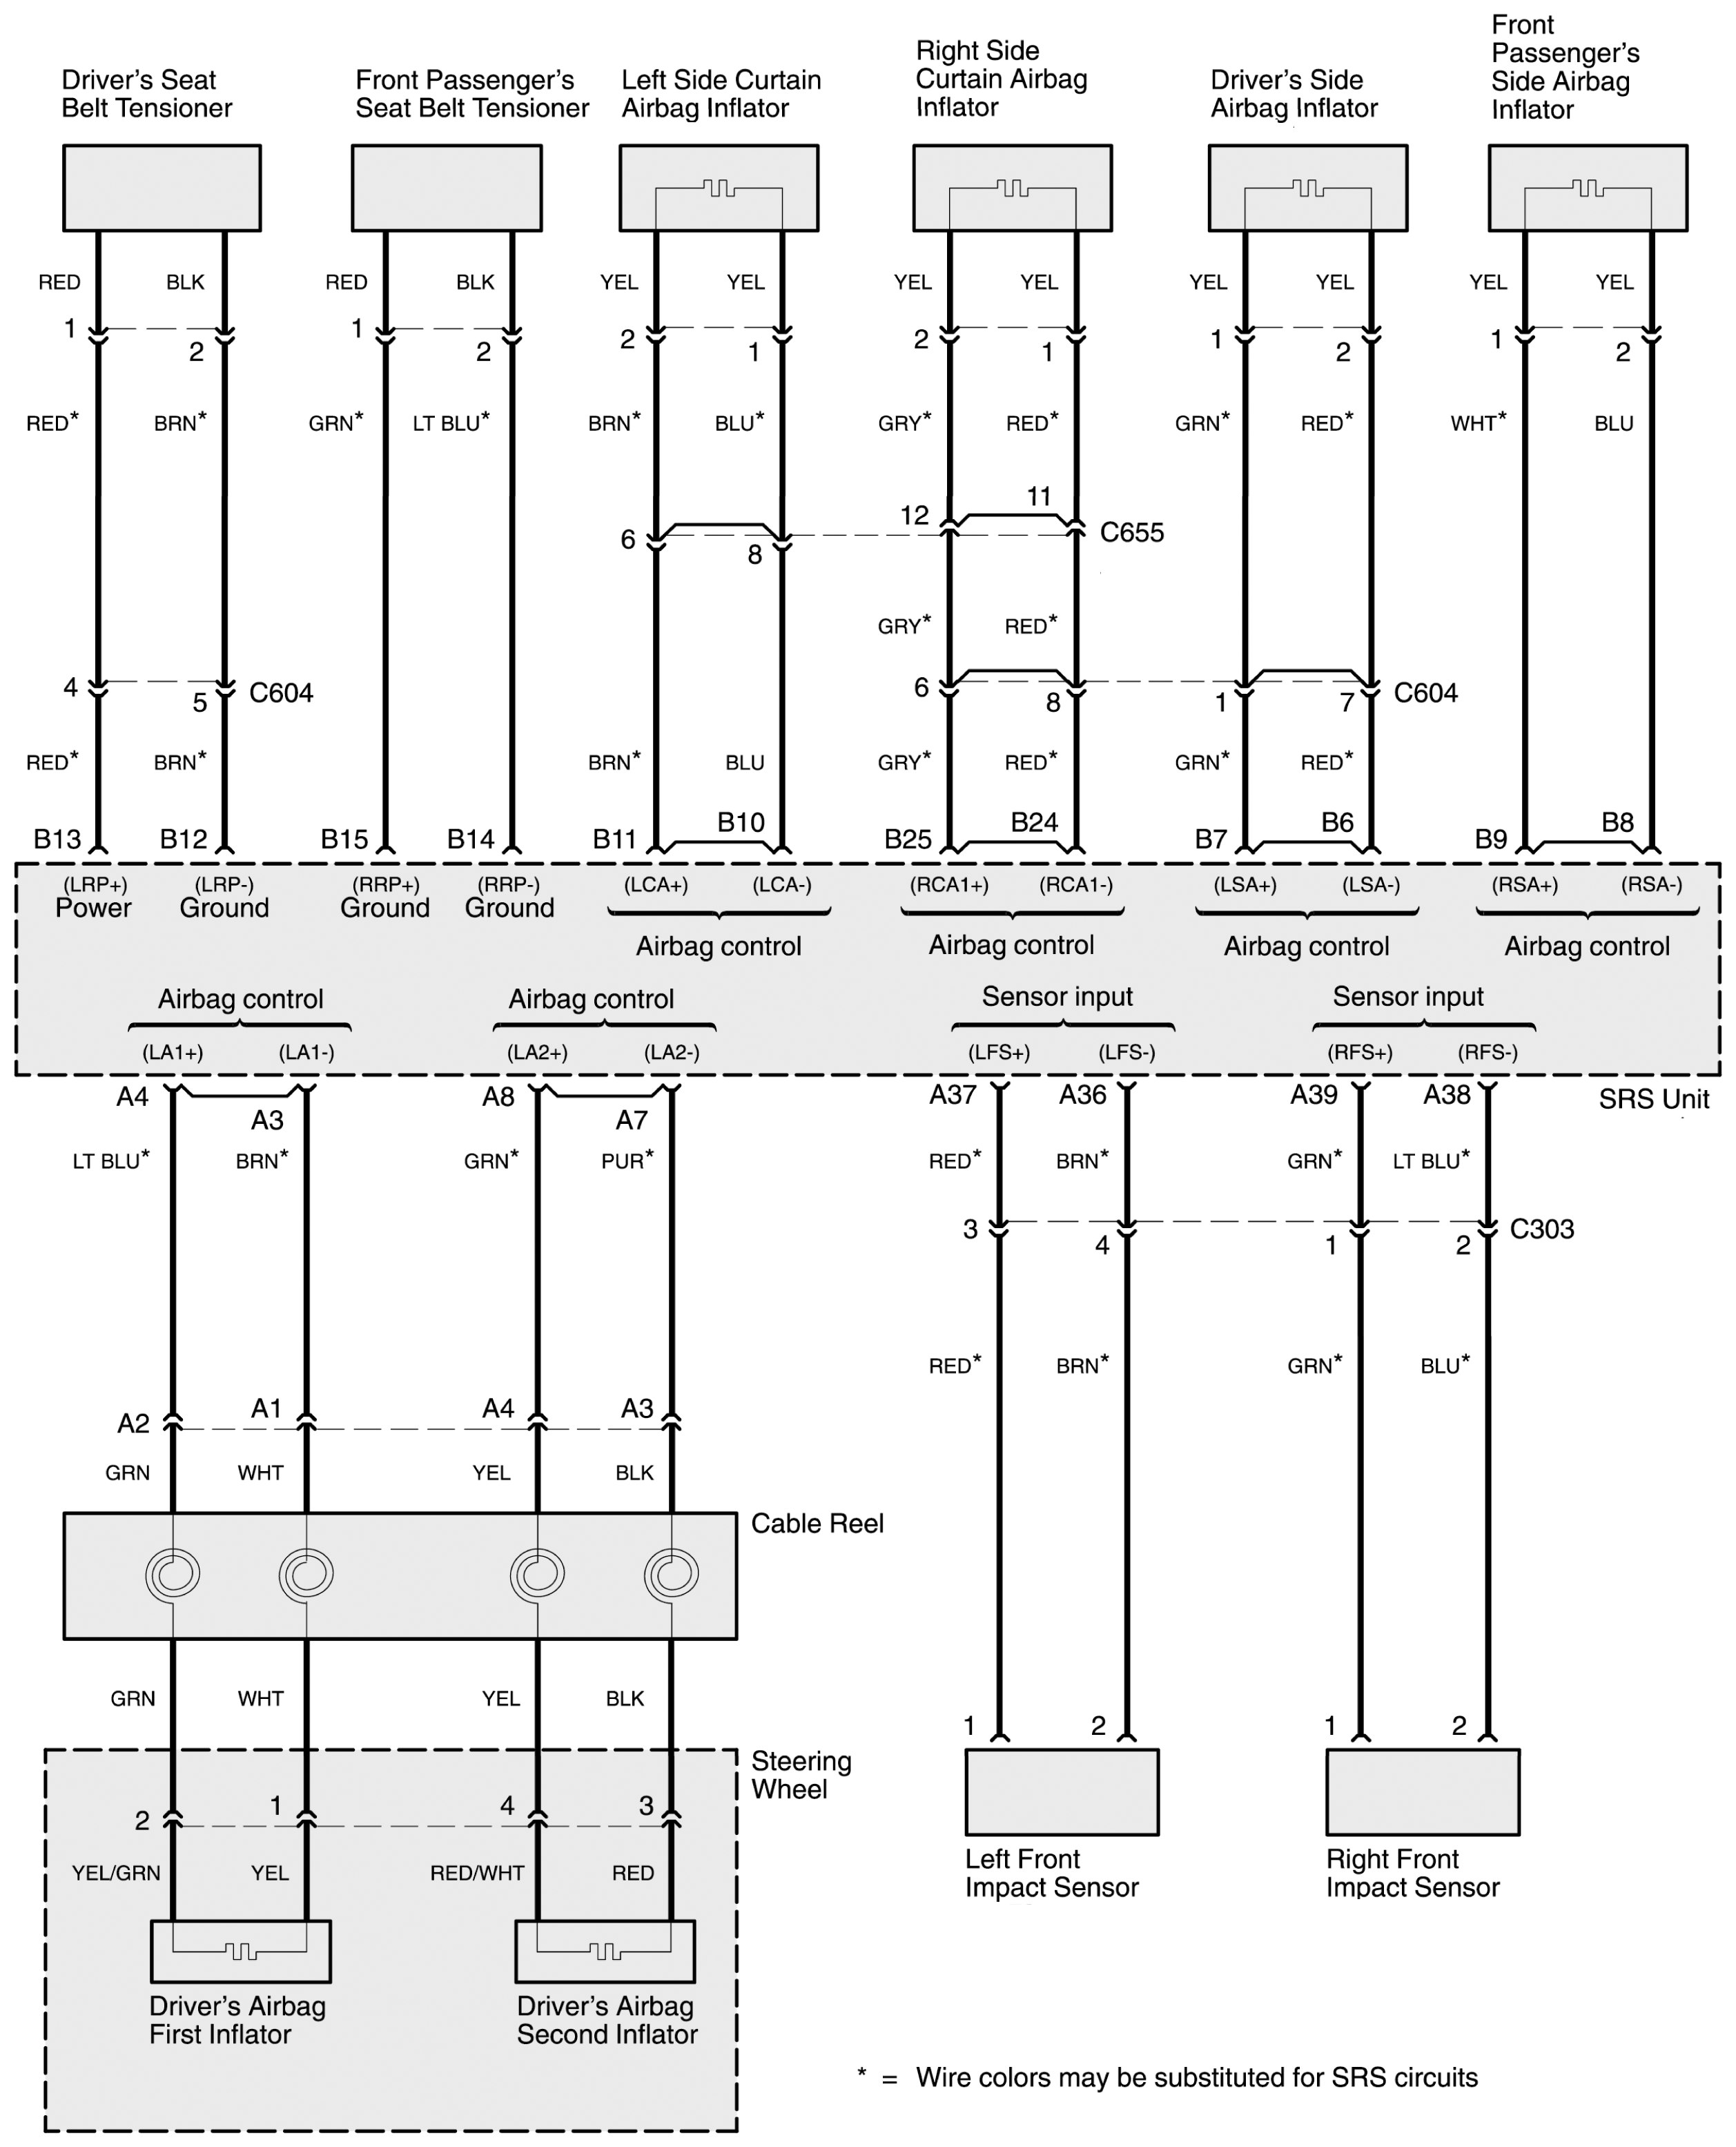 2008 Acura Rl Fuse Box Diagram on buick lacrosse antenna